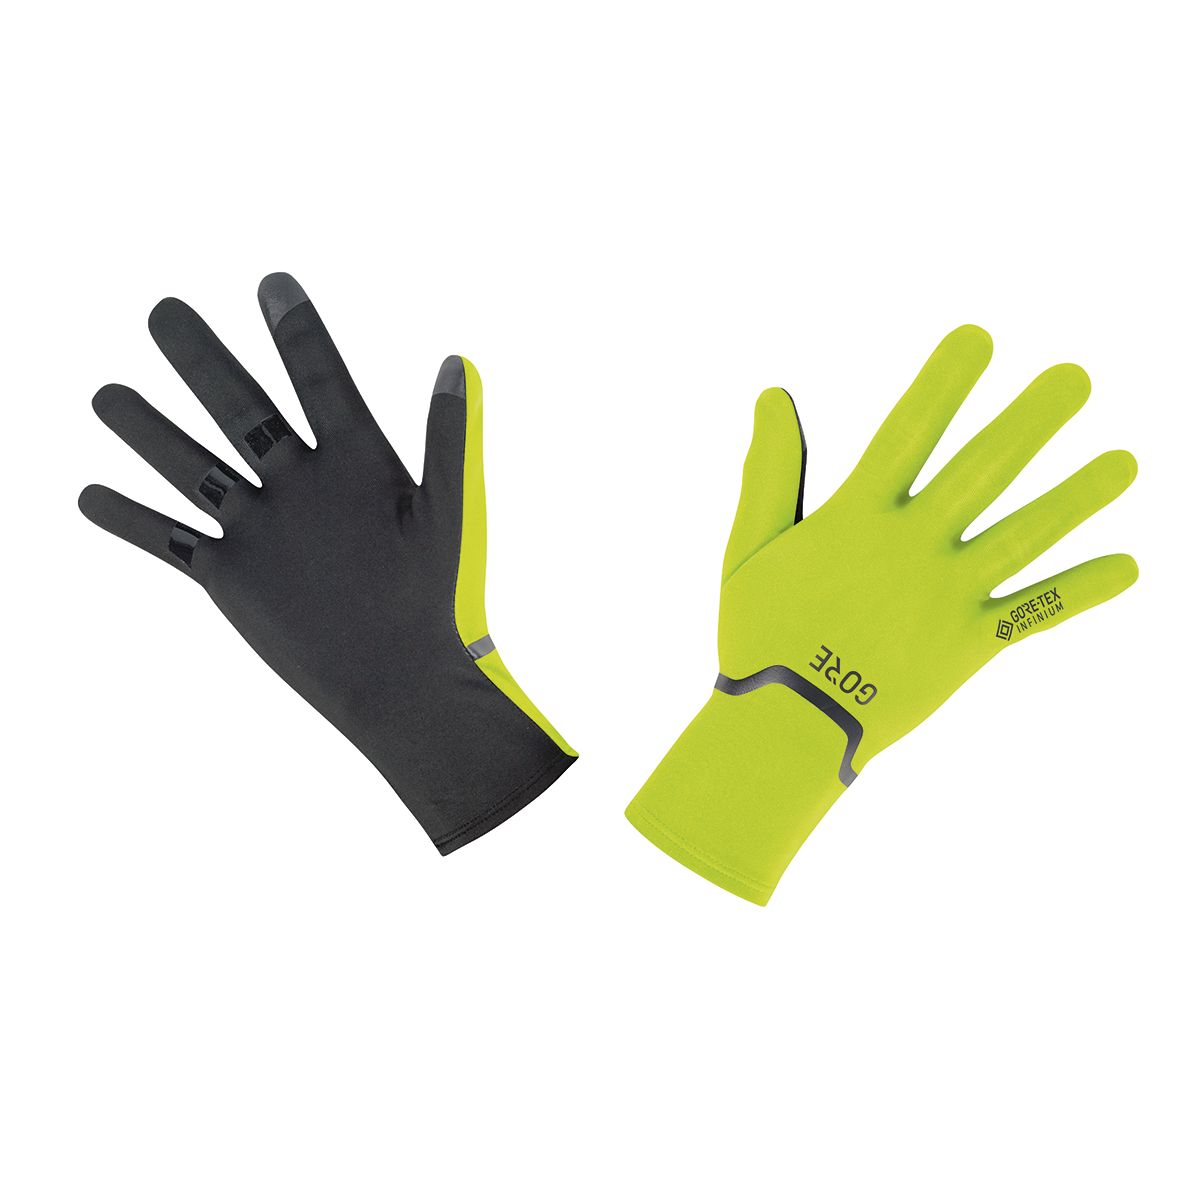 M GORE-TEX INFINIUM STRETCH GLOVES